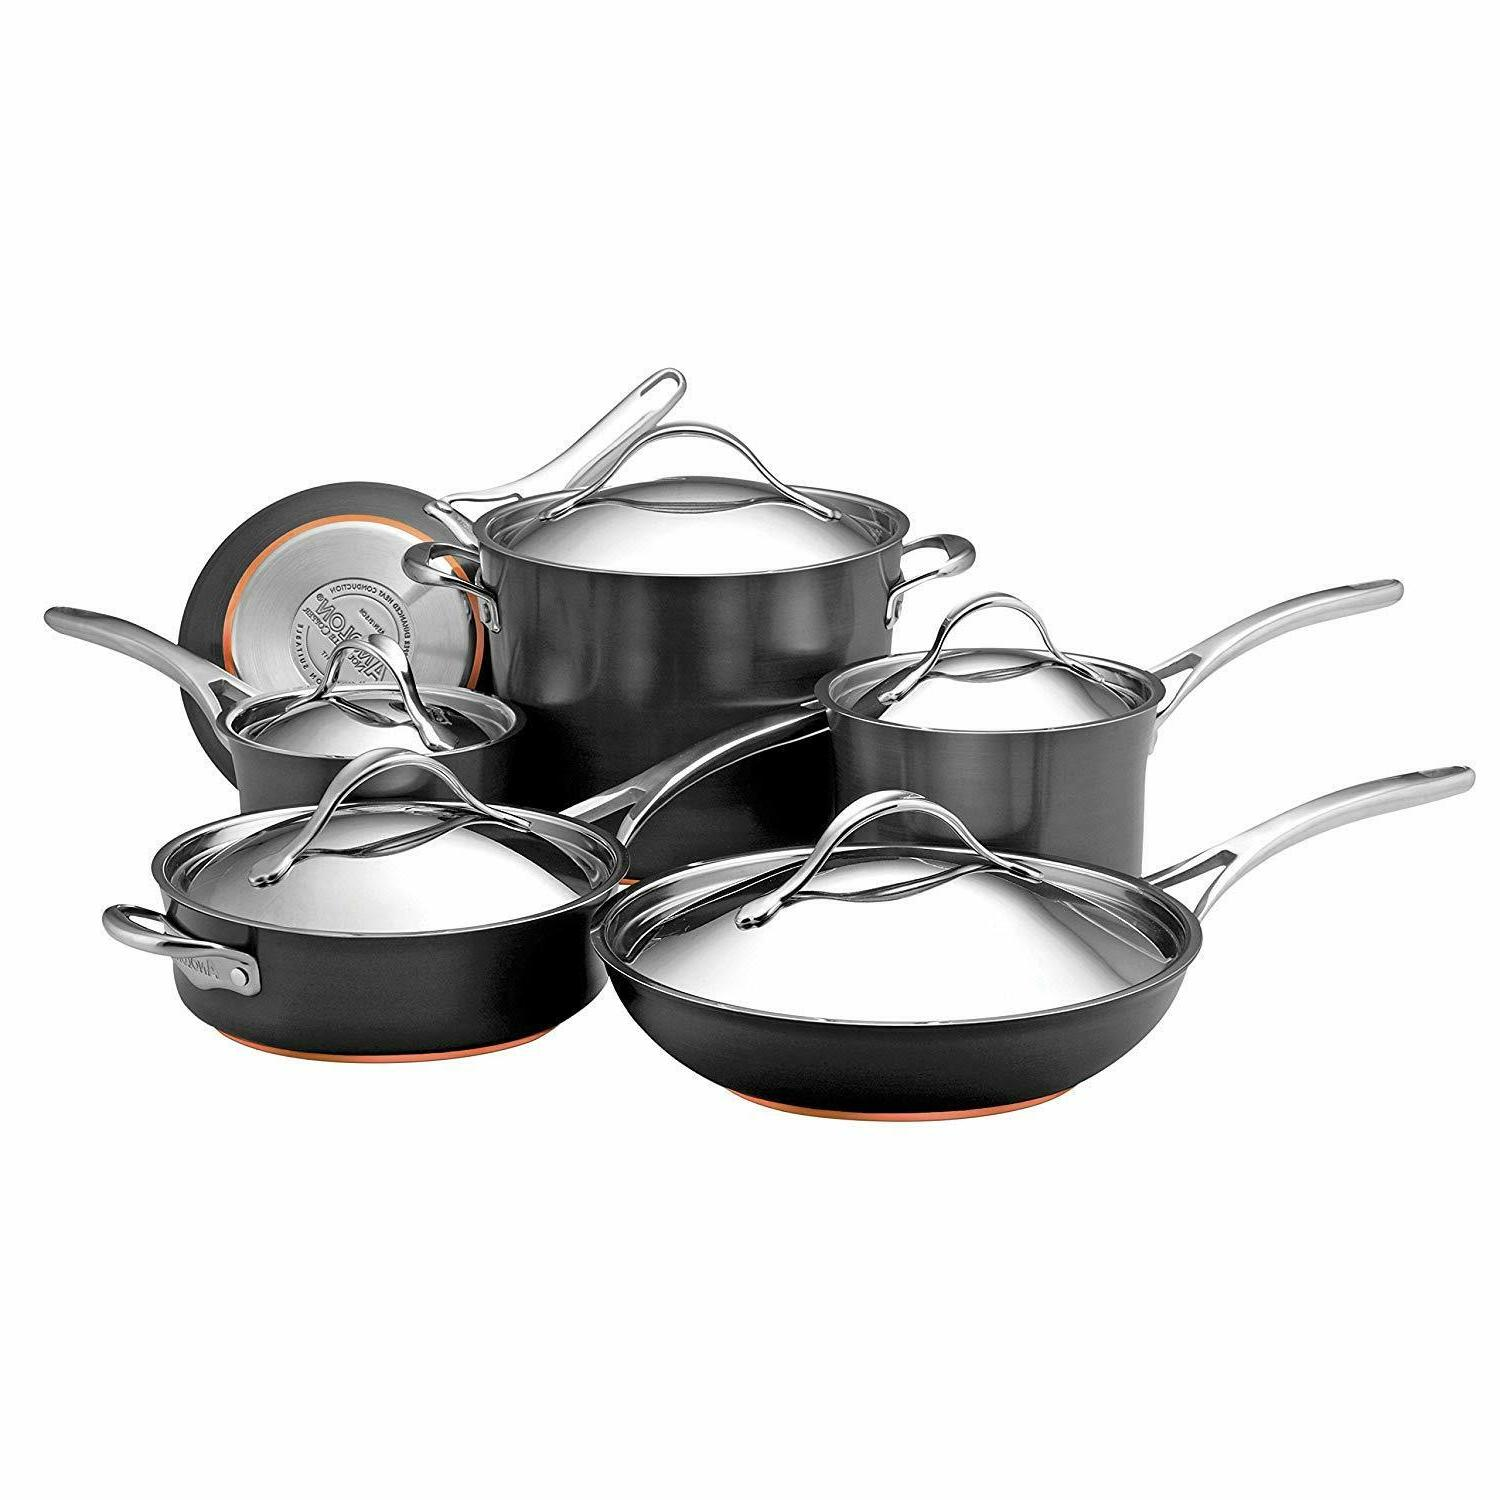 nouvelle copper hard anodized nonstick cookware set